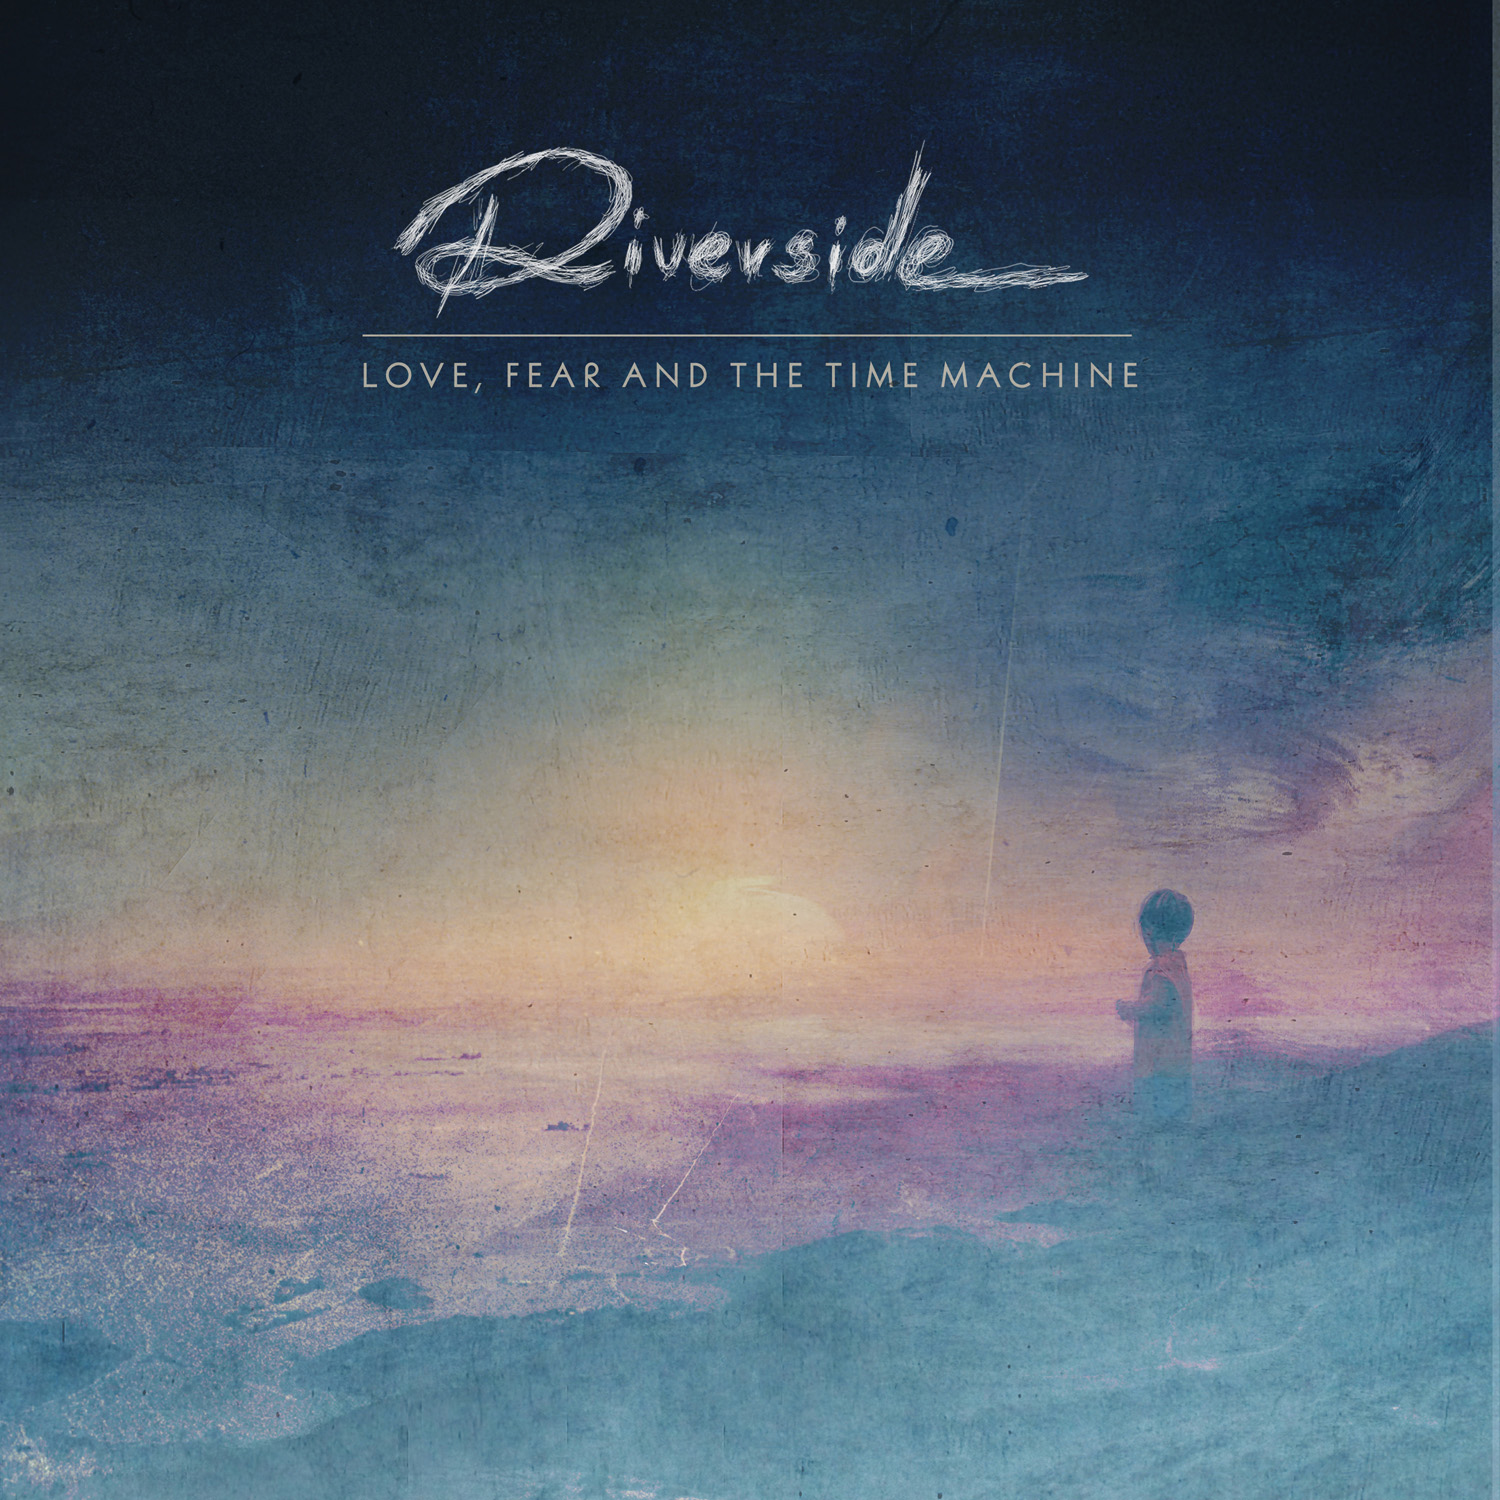 Riverside – Love, Fear and the Time Machine Review